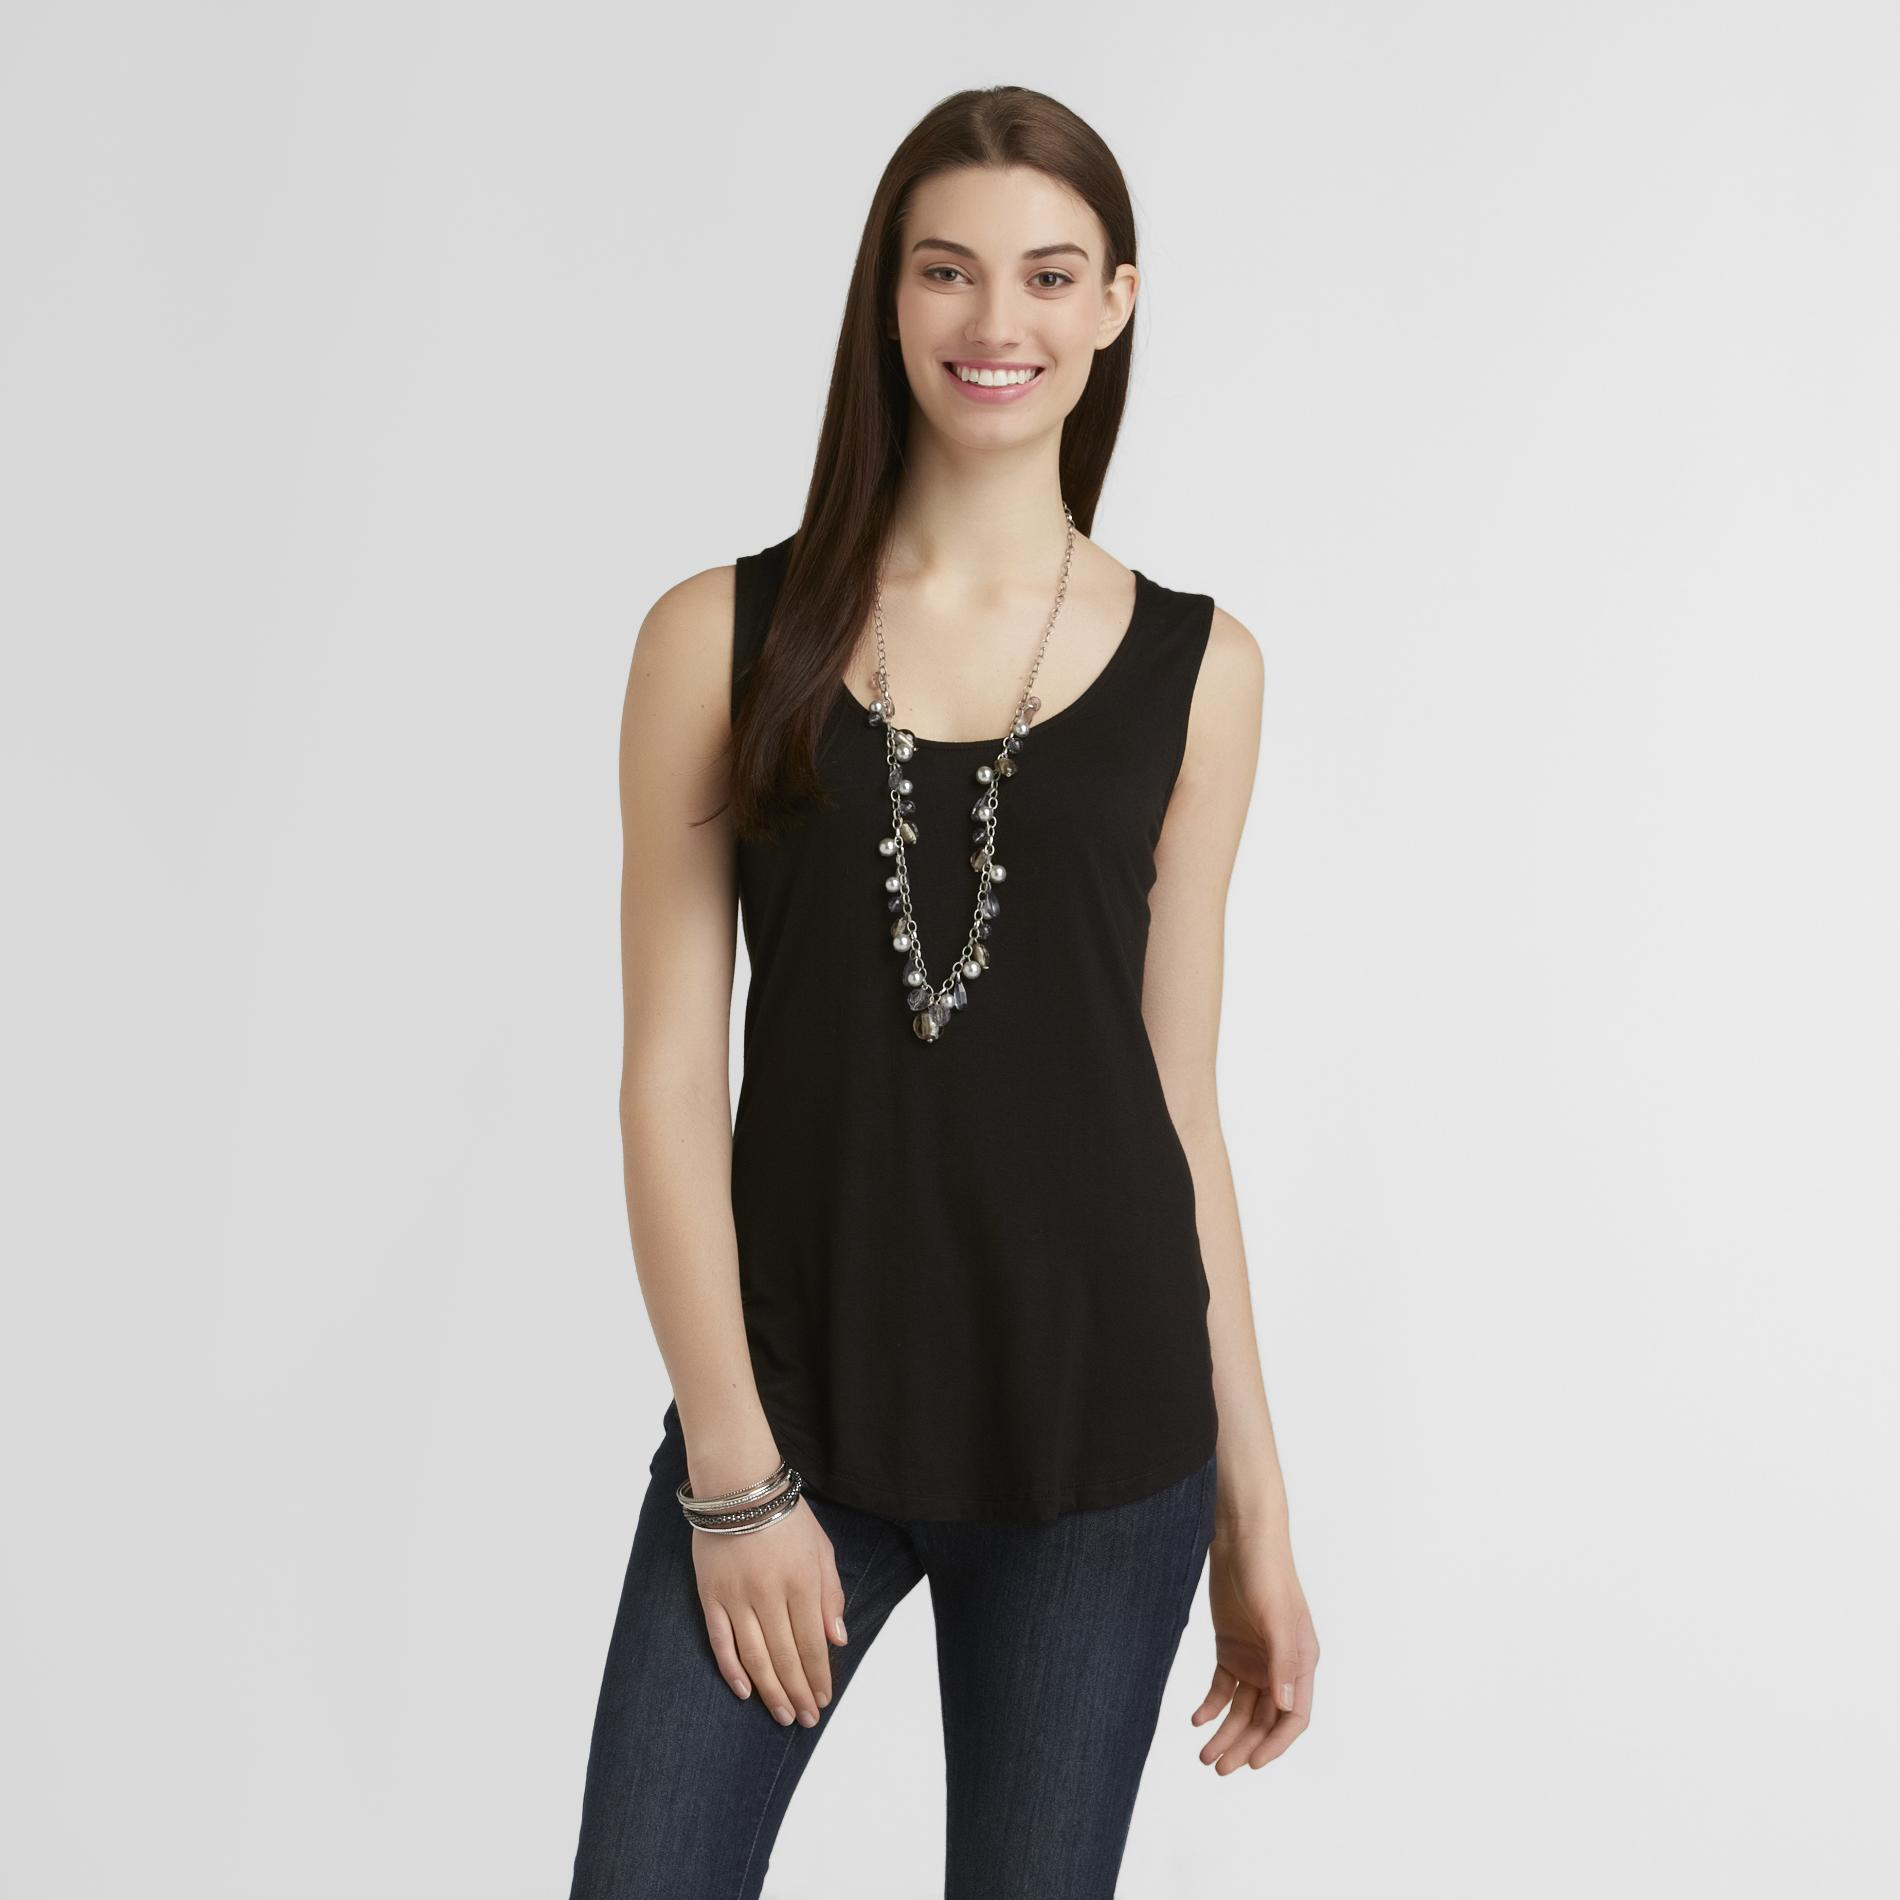 Metaphor Women's High-Low Tank Top at Sears.com